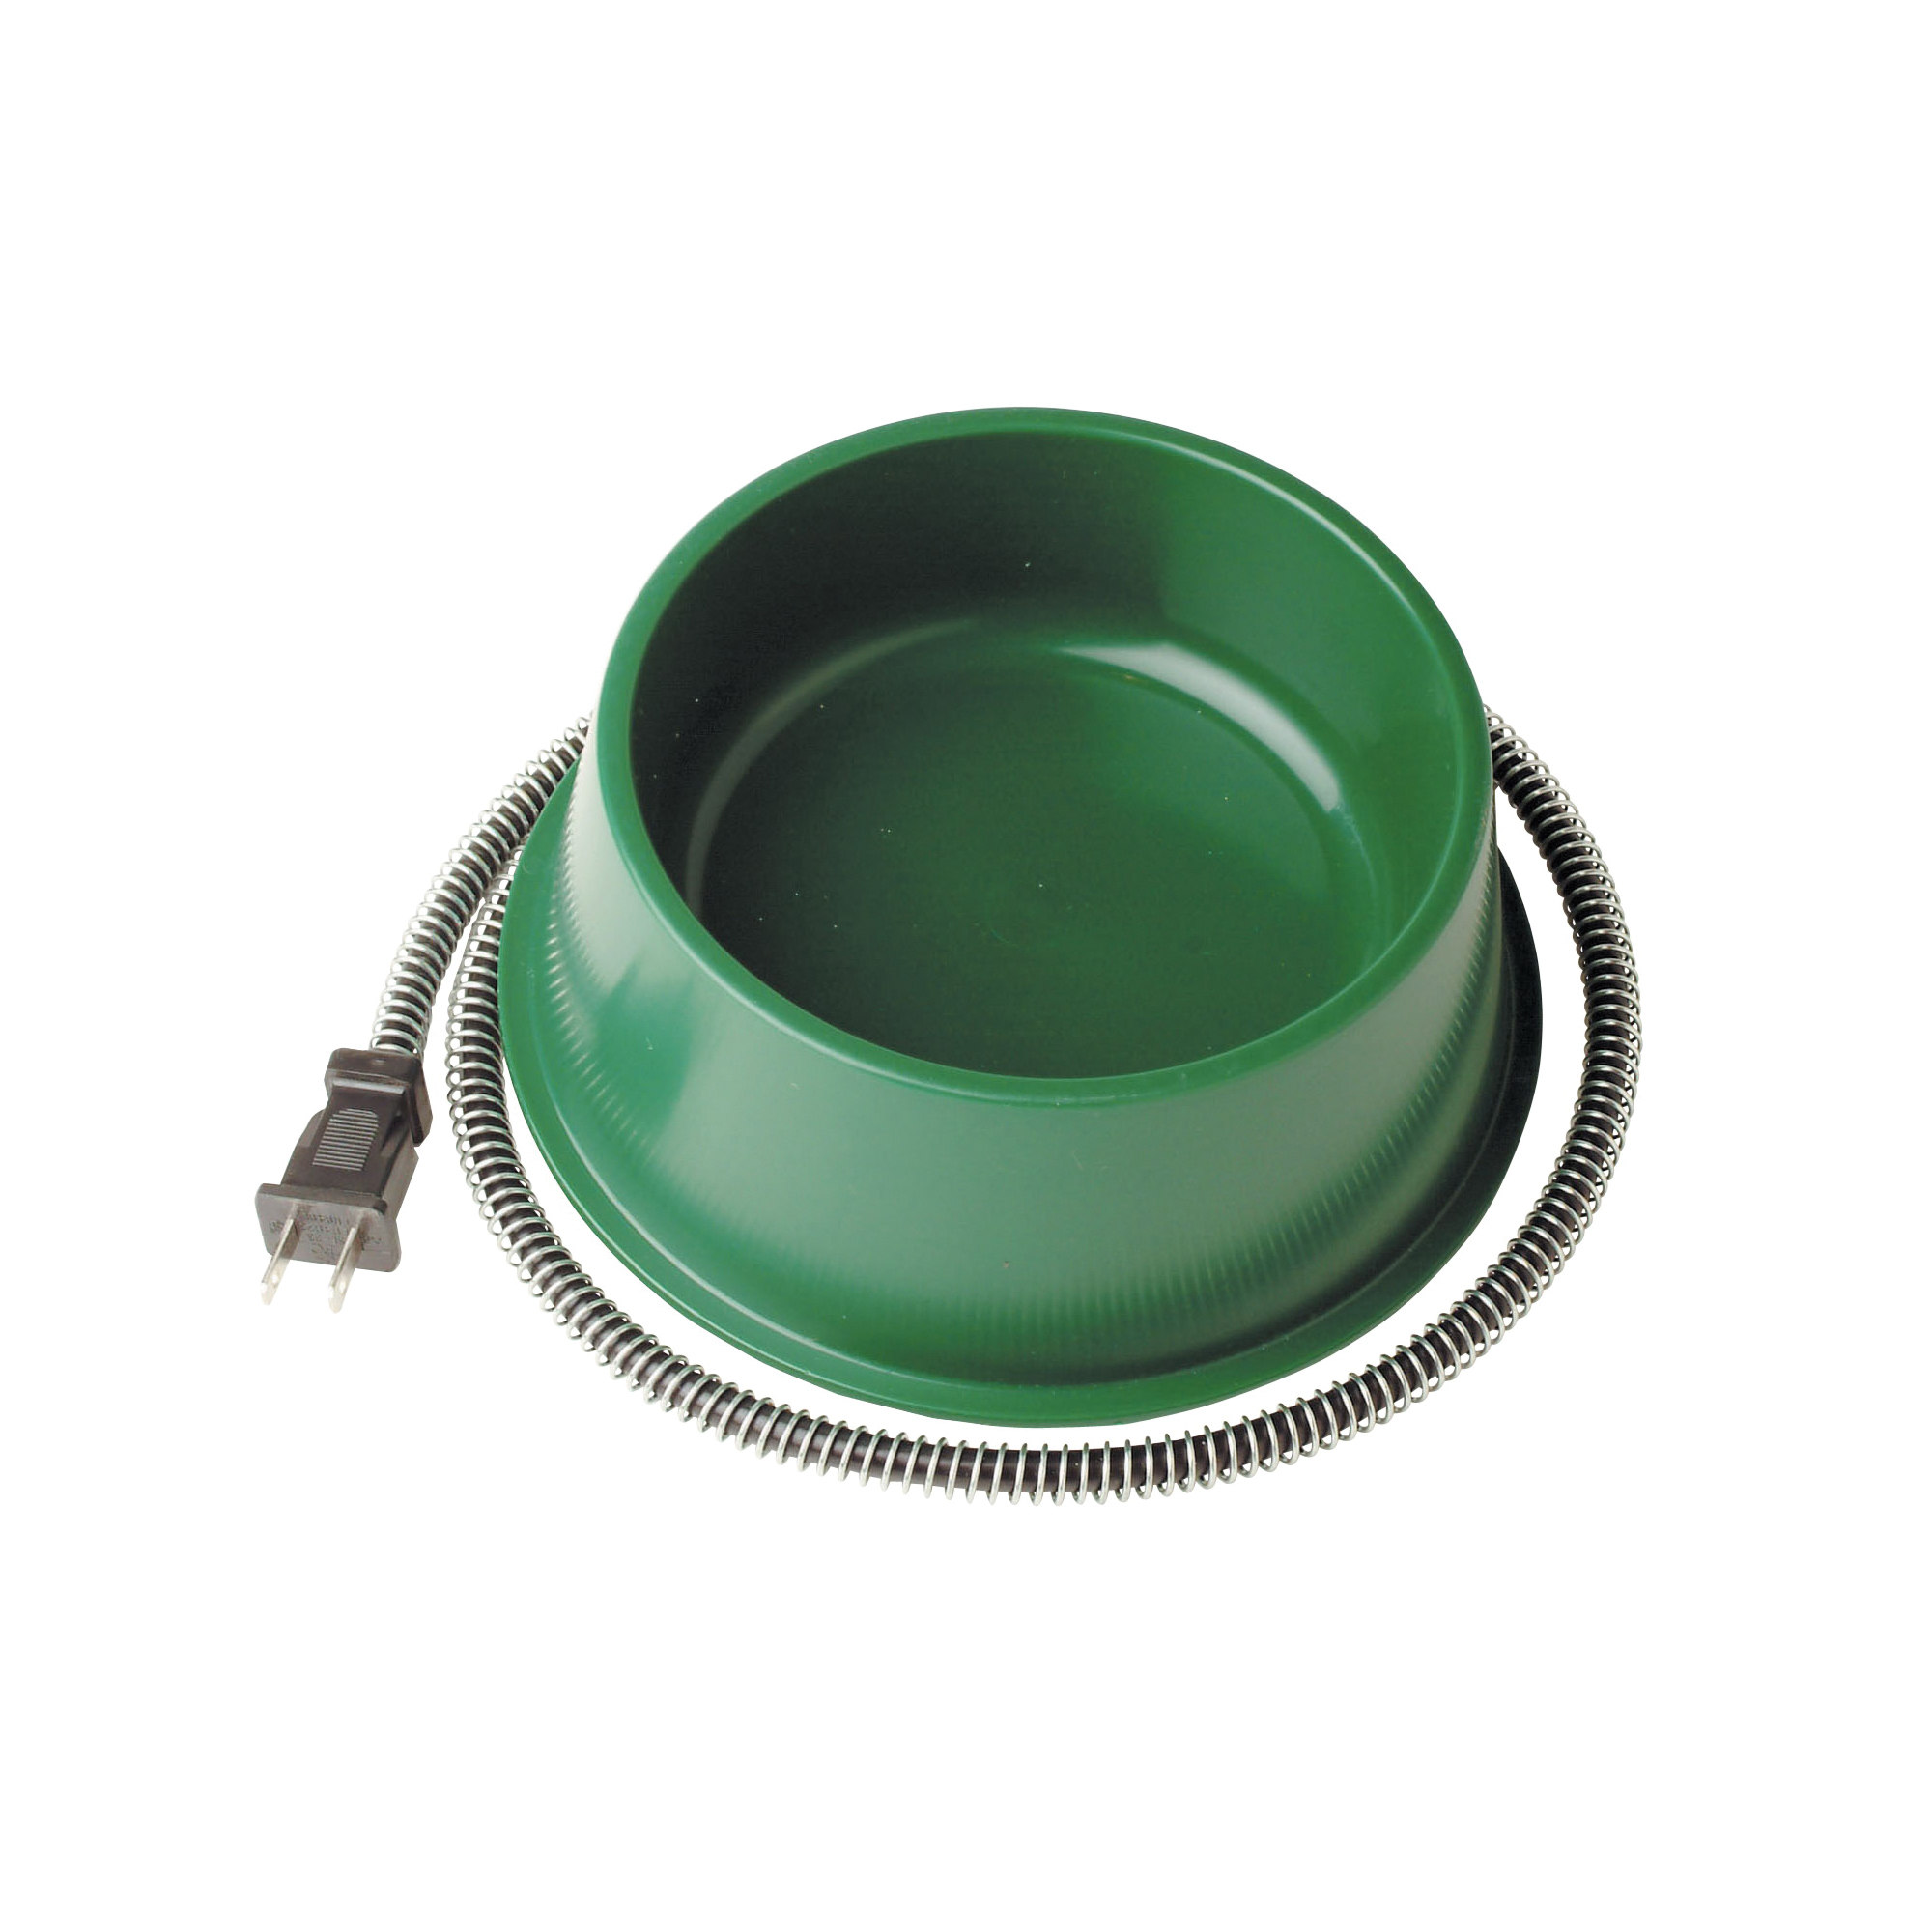 Picture of FARM INNOVATORS QT-1 Pet Bowl, 1 qt Volume